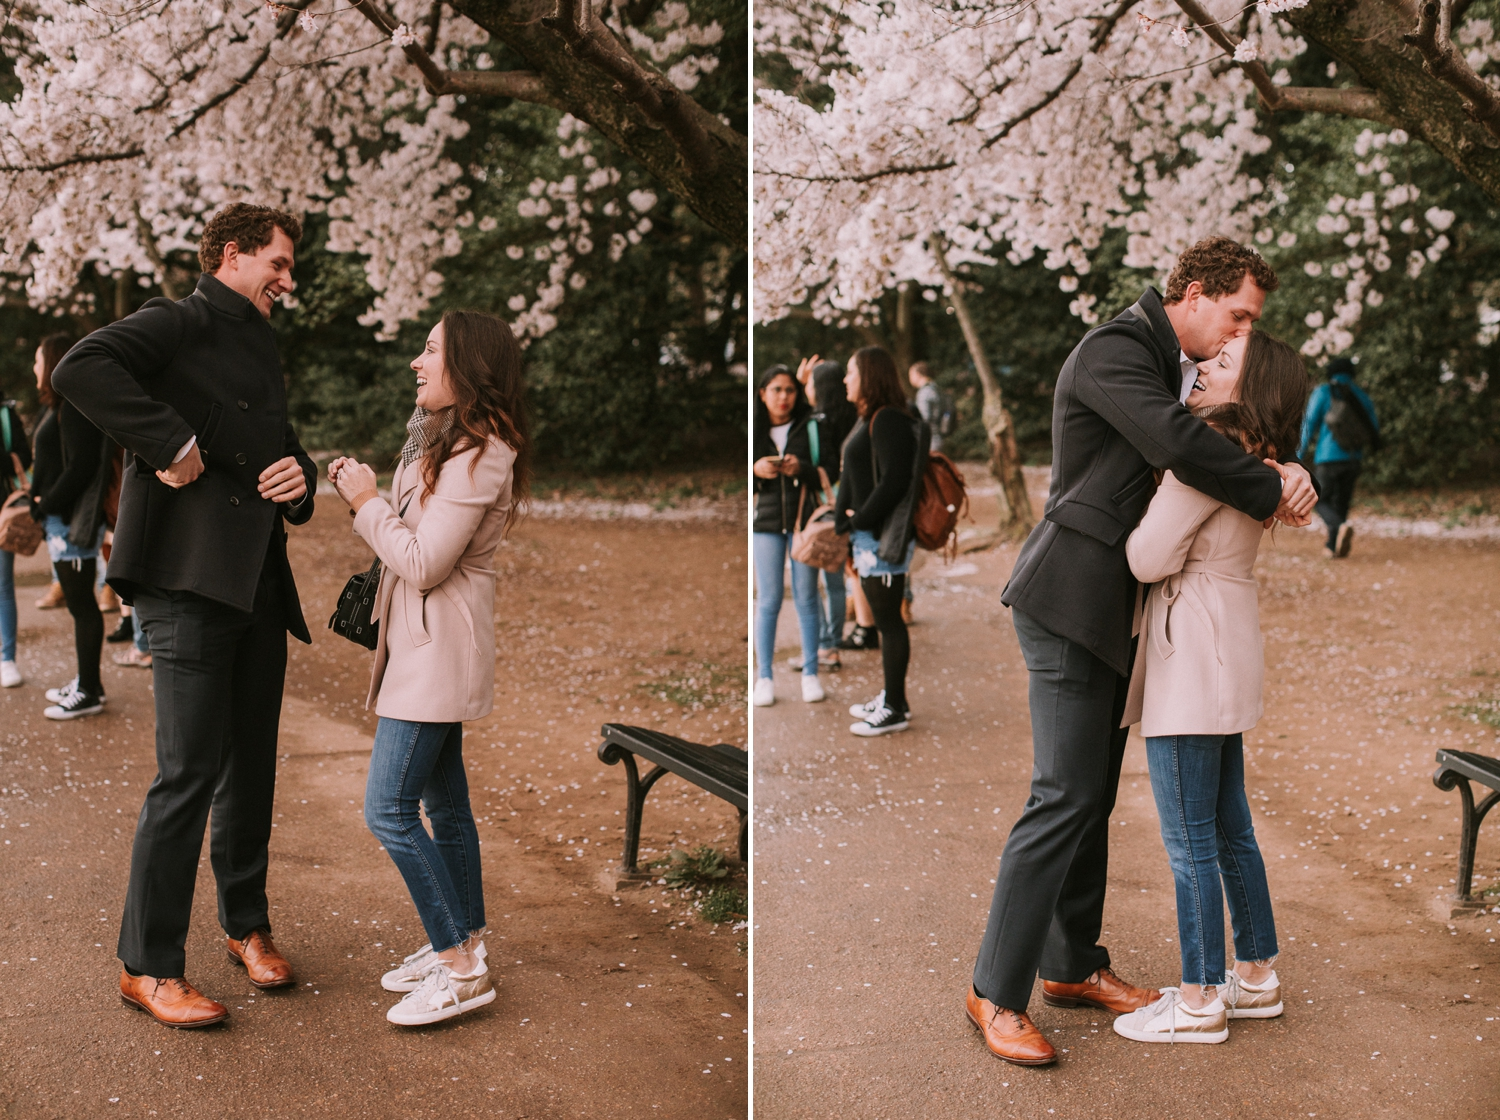 washington-dc-cherry-blossom-tidal-basin-proposal-photographer 9.jpg